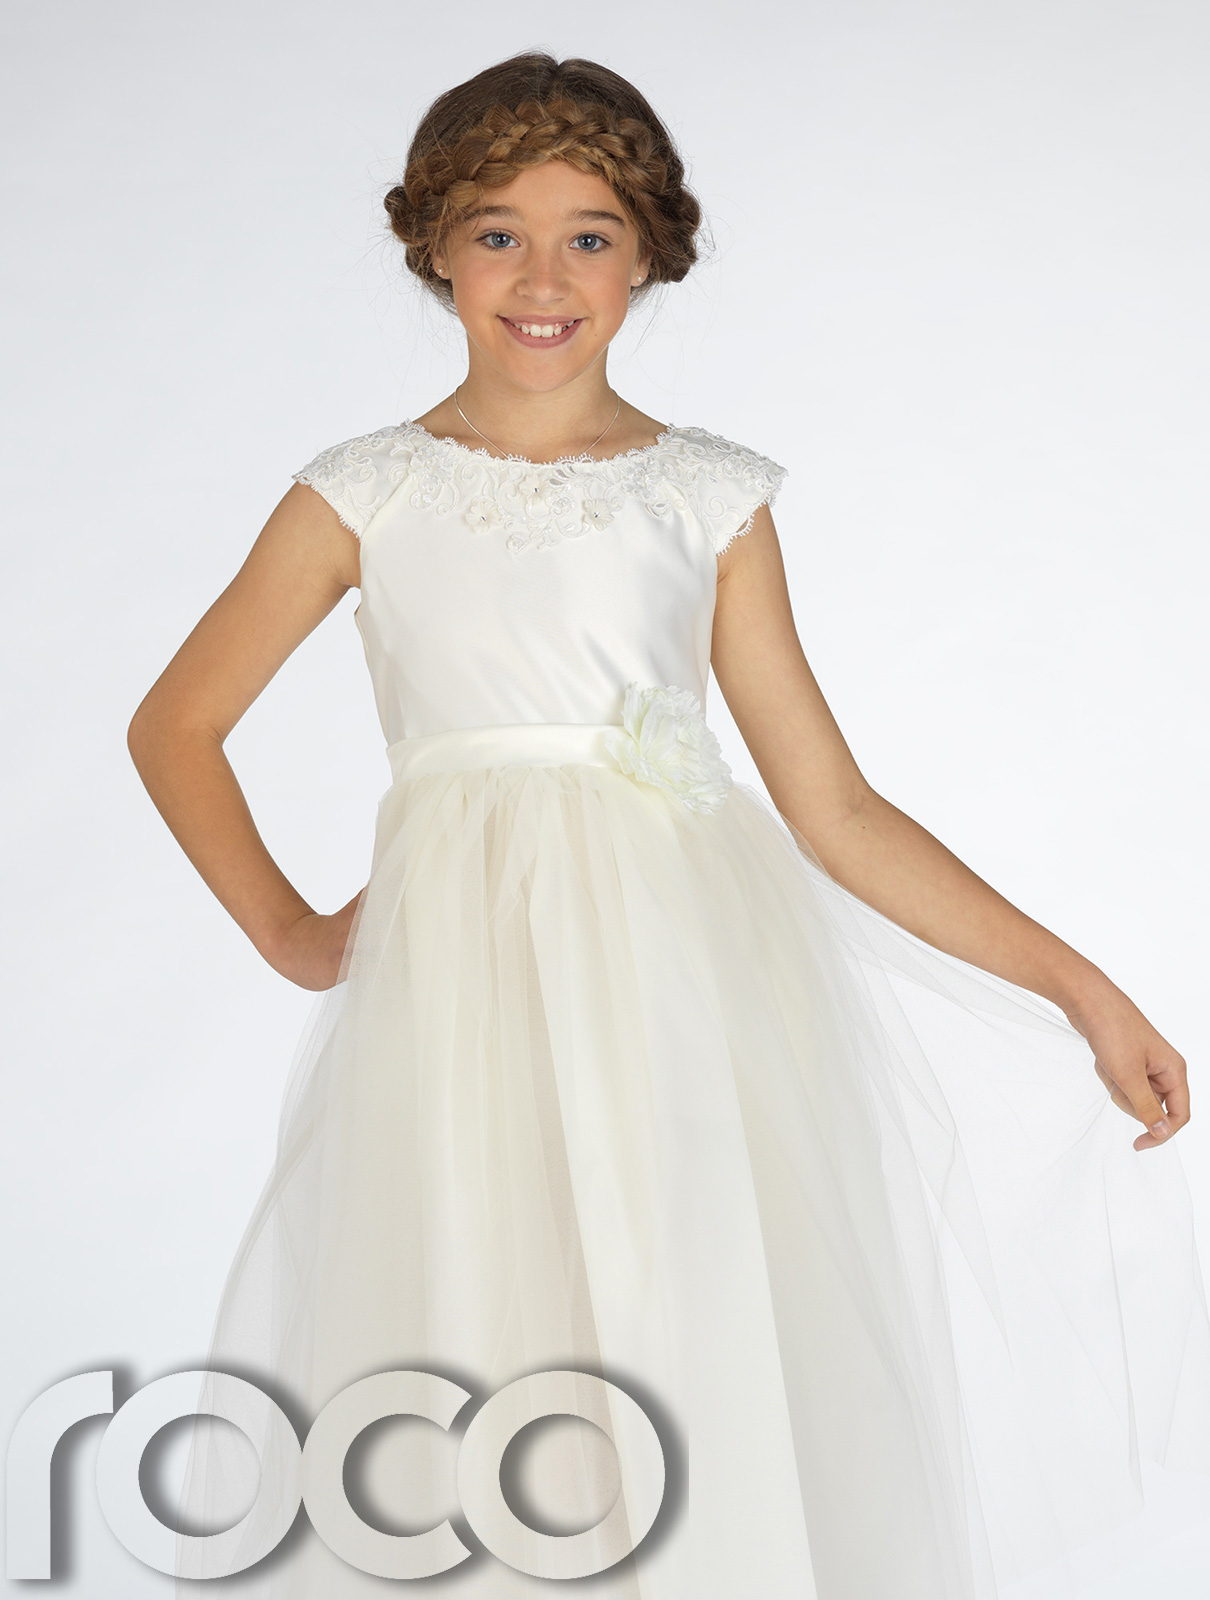 how to cut flower girl dress